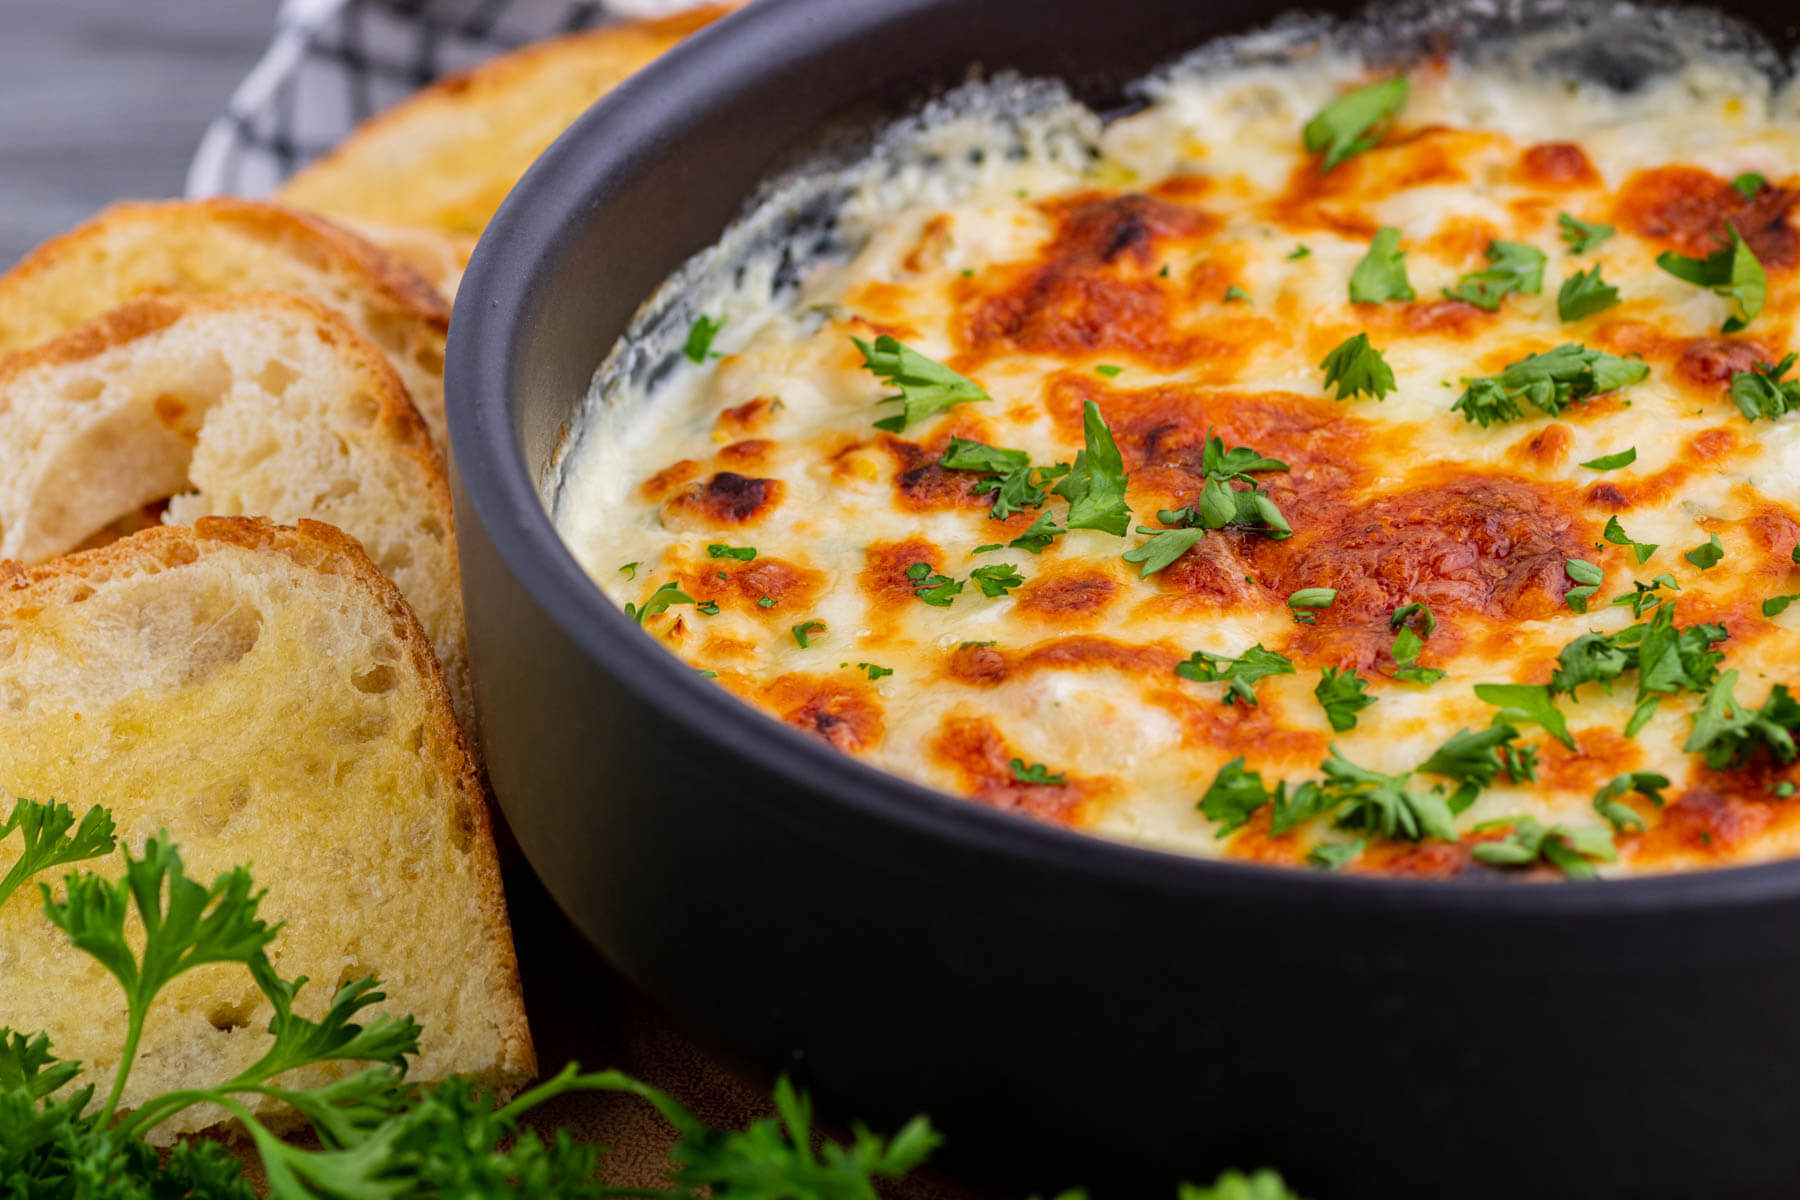 Close up of hot golden baked cheese dip with sliced baguette.